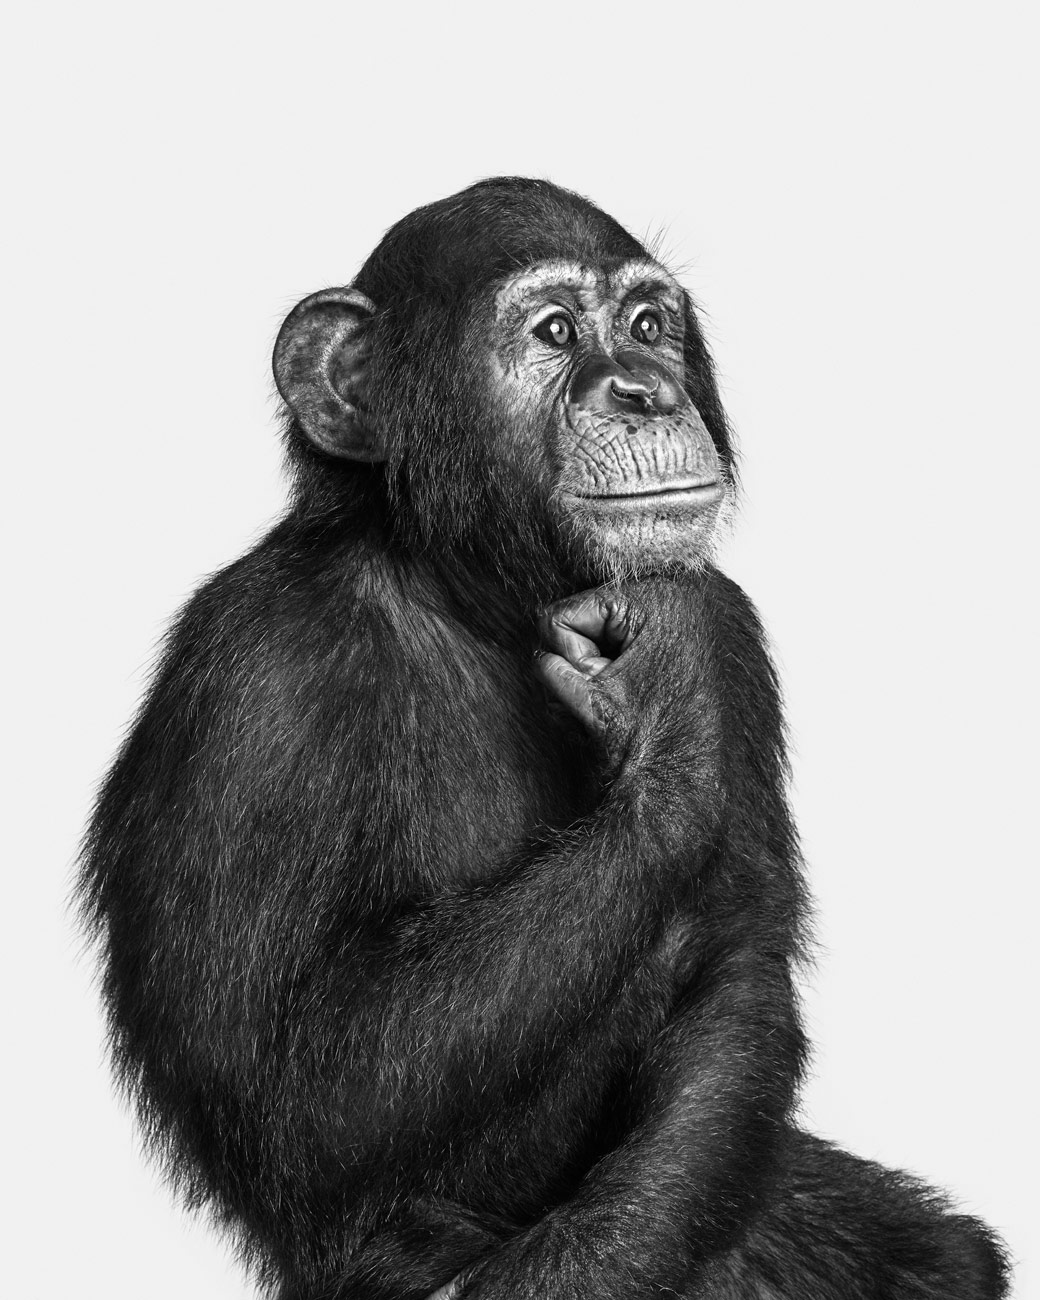 Chimp_01_BW